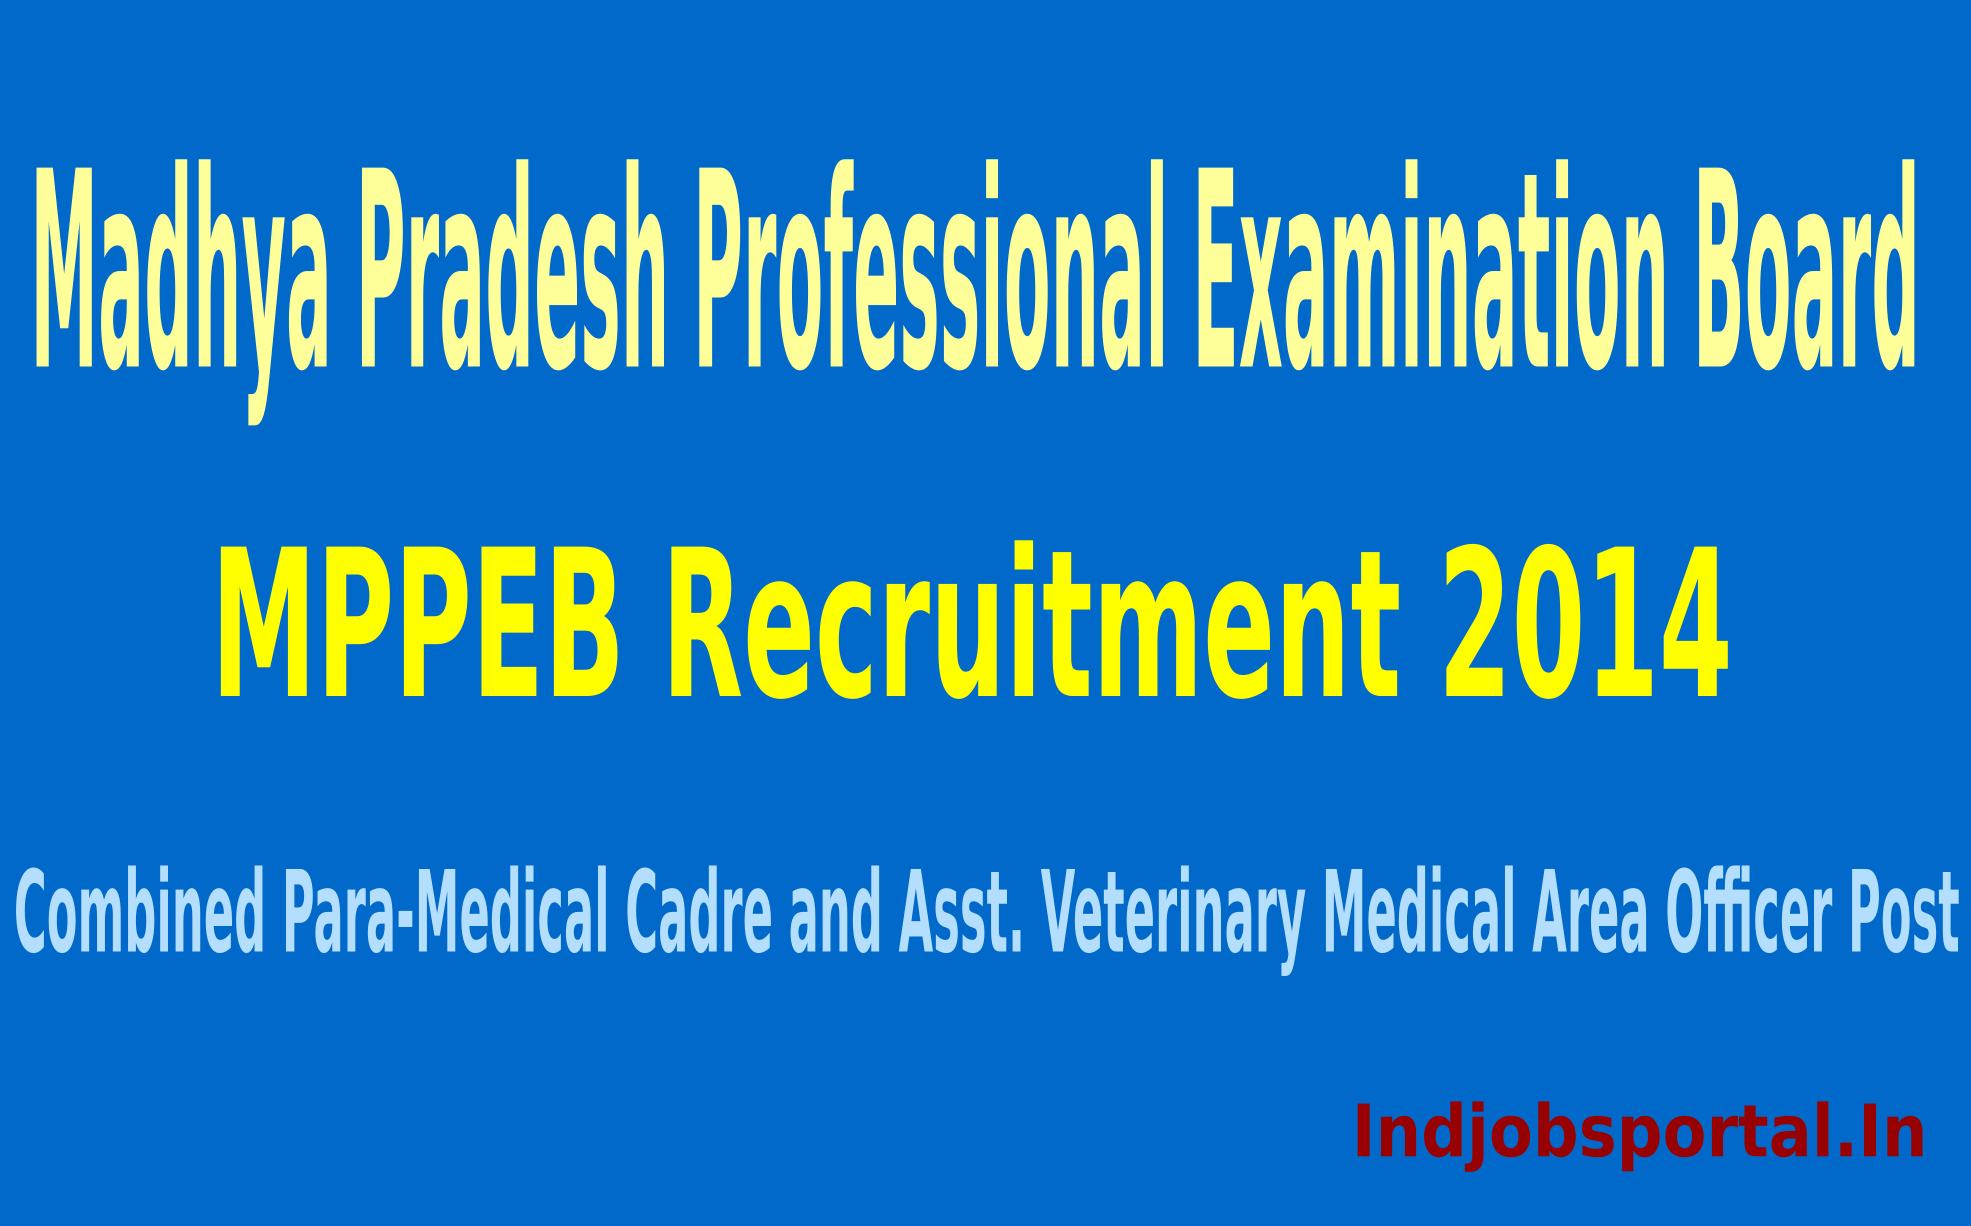 MPPEB Recruitment 2015 For 1877 Combined Para-Medical Cadre and Asst. Veterinary Medical Area Officer Post